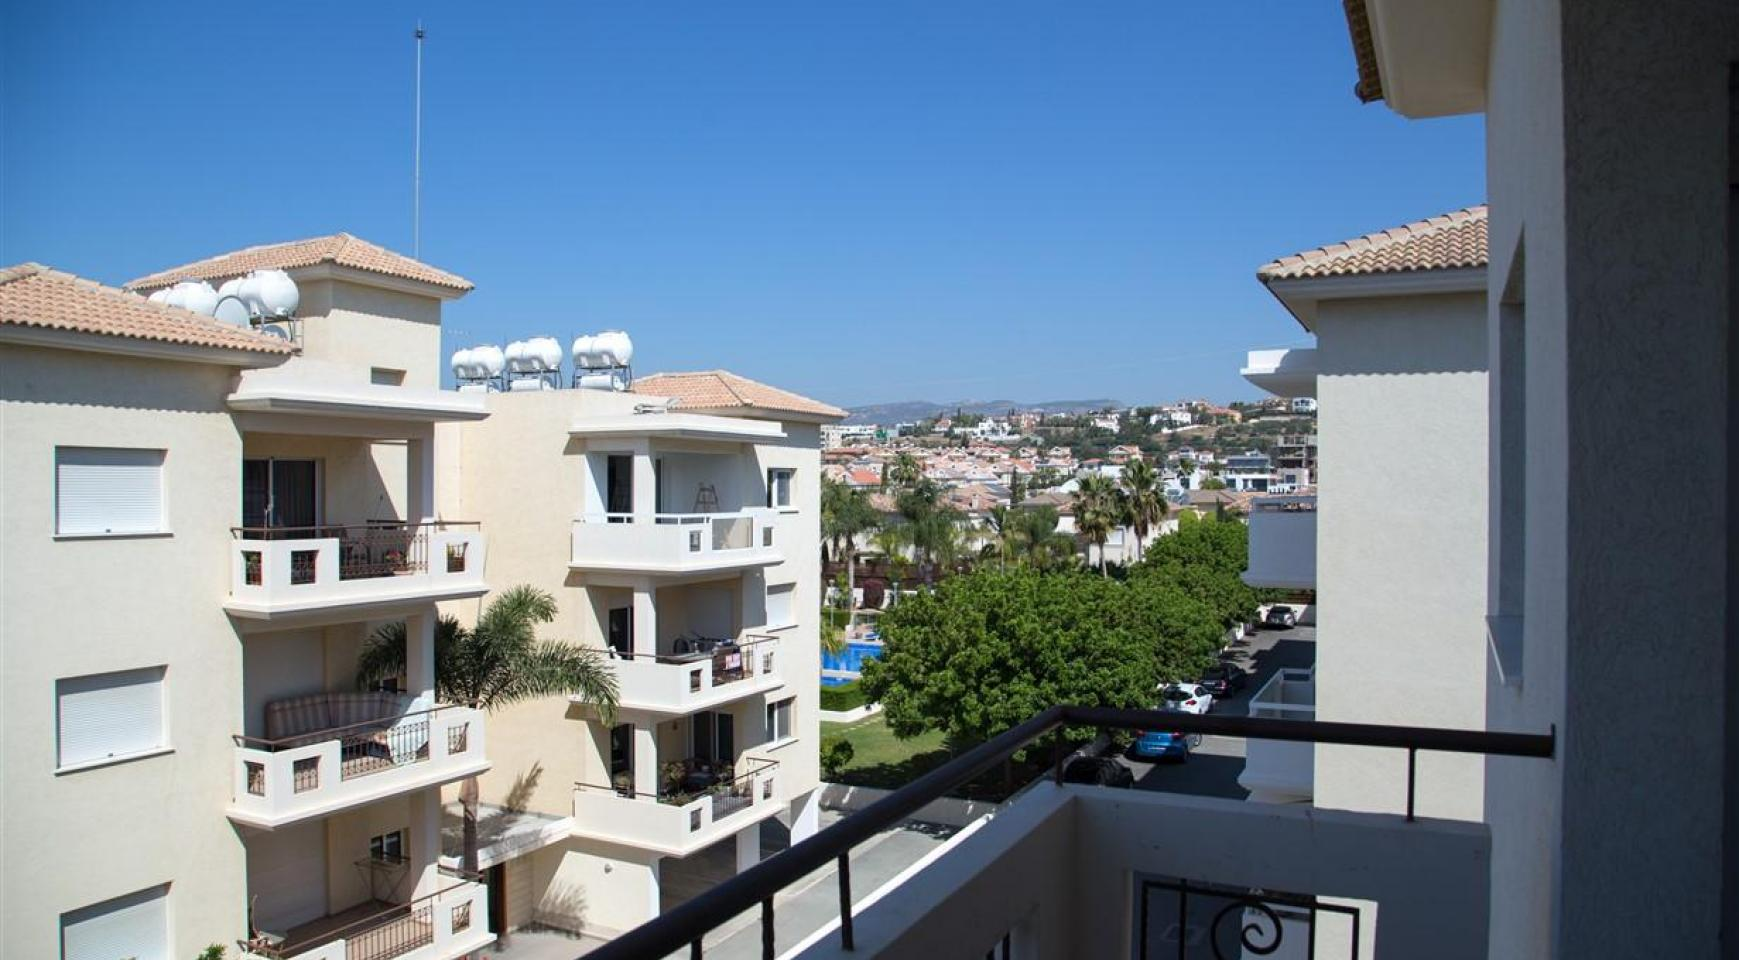 Luxury 2 Bedroom Apartment Mesogios Iris 304 in the Tourist area near the Beach - 45